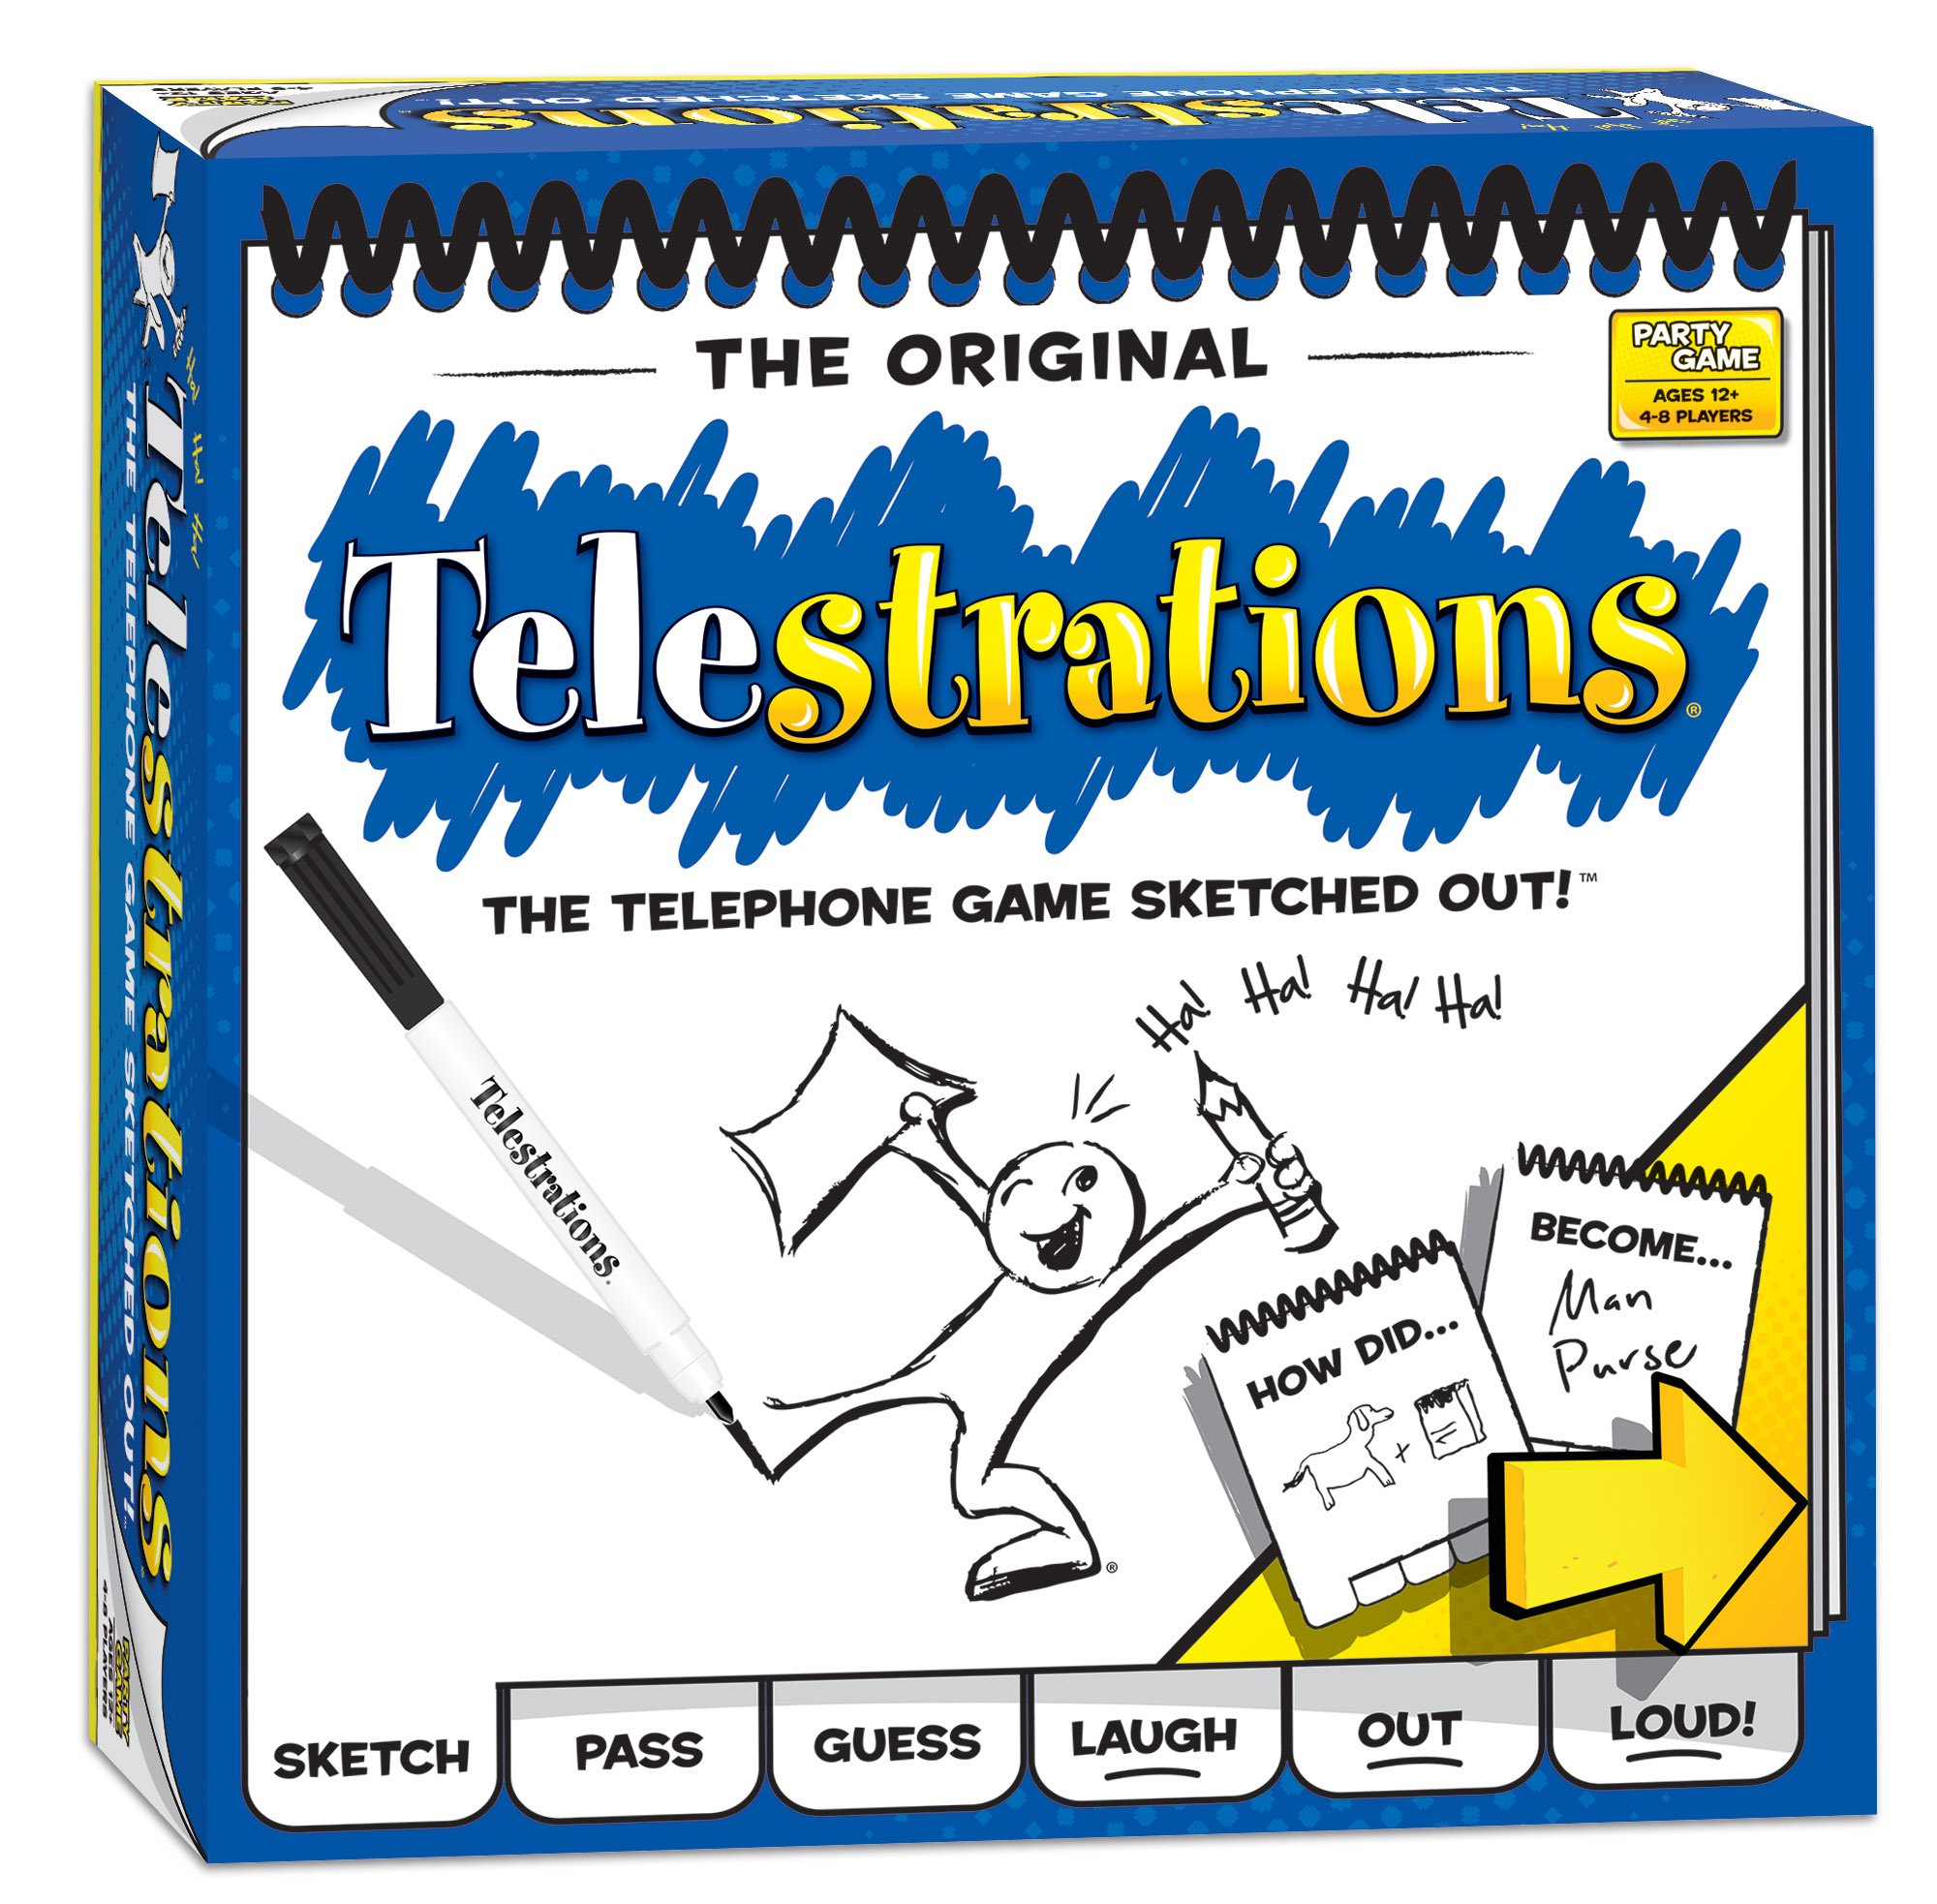 USAOPOLY Telestrations Original 8 Player | Family Board Game | A Fun Family Game for Kids and Adults | Family Game Night Just Got Better | The Telephone Game Sketched Out by USAOPOLY